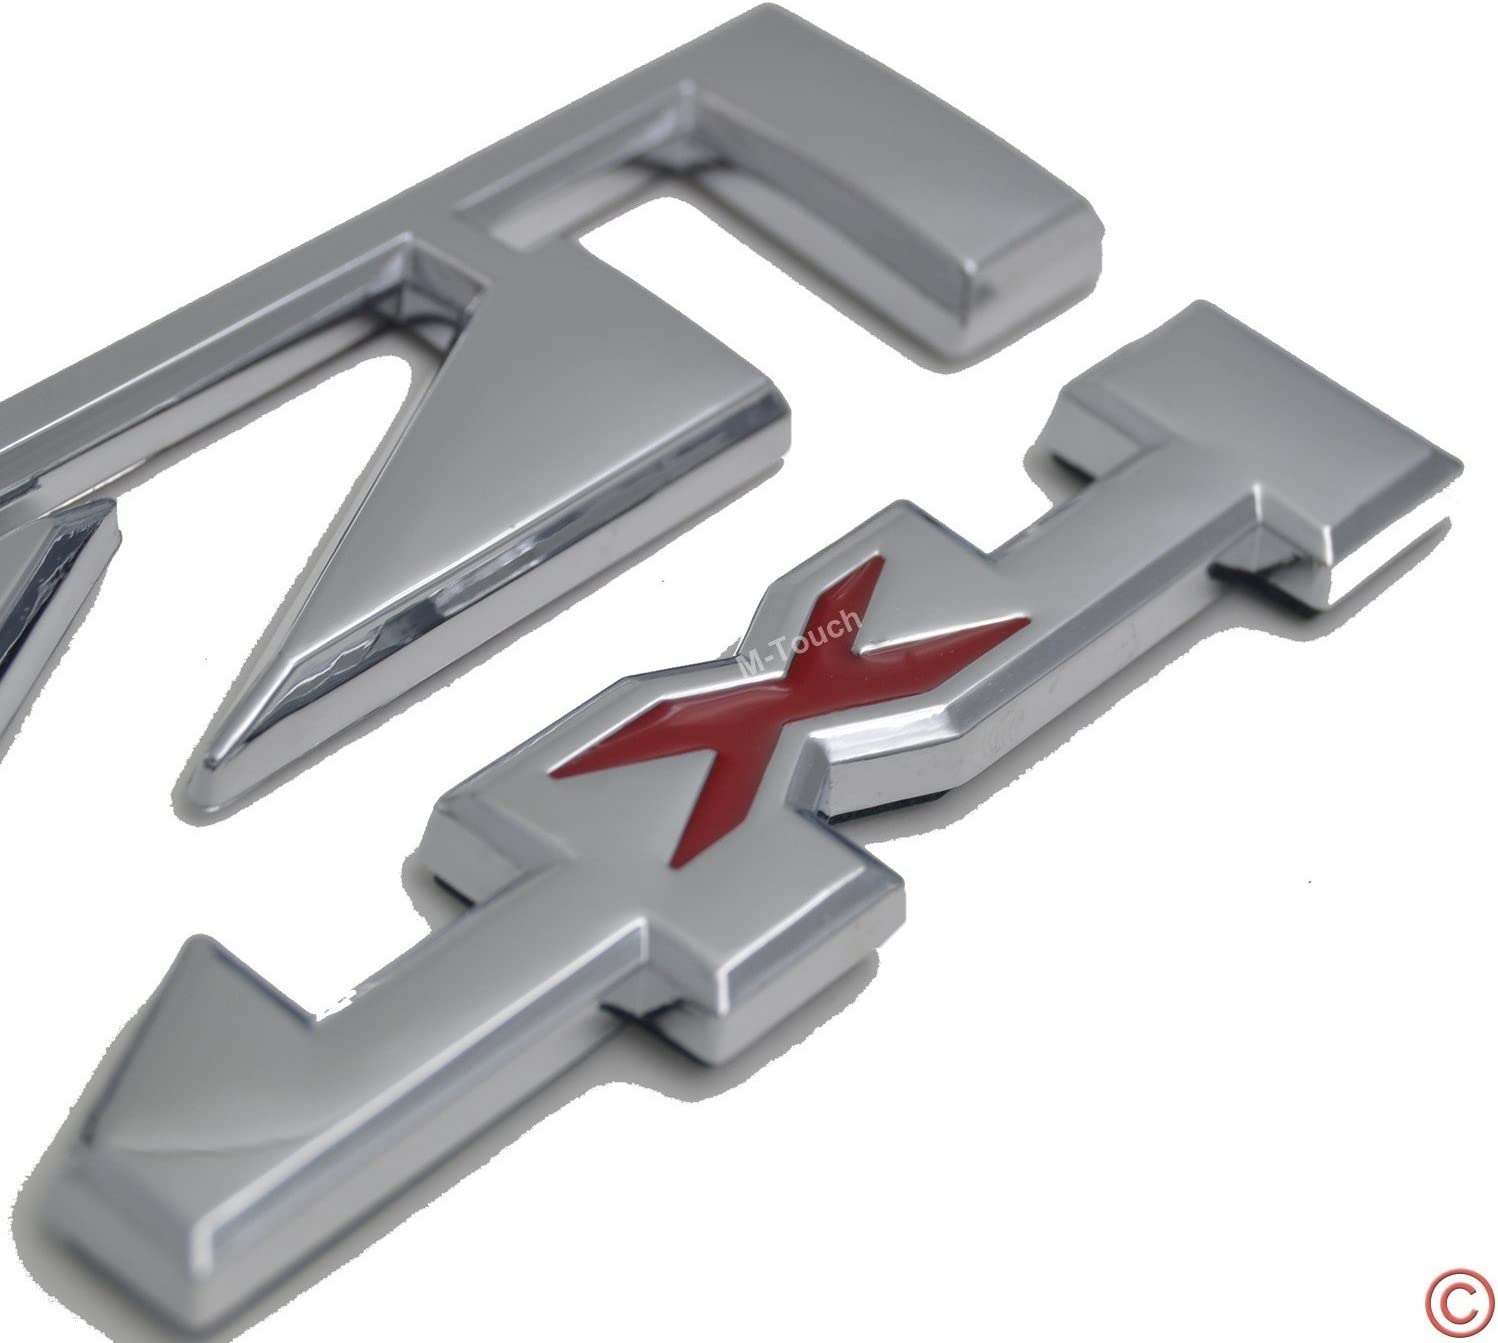 2x Good Quality Red Chrome Z71 4x4 Emblem Badge Plate OEM for 2013-2015 GMC Chevy Silverado Sierra